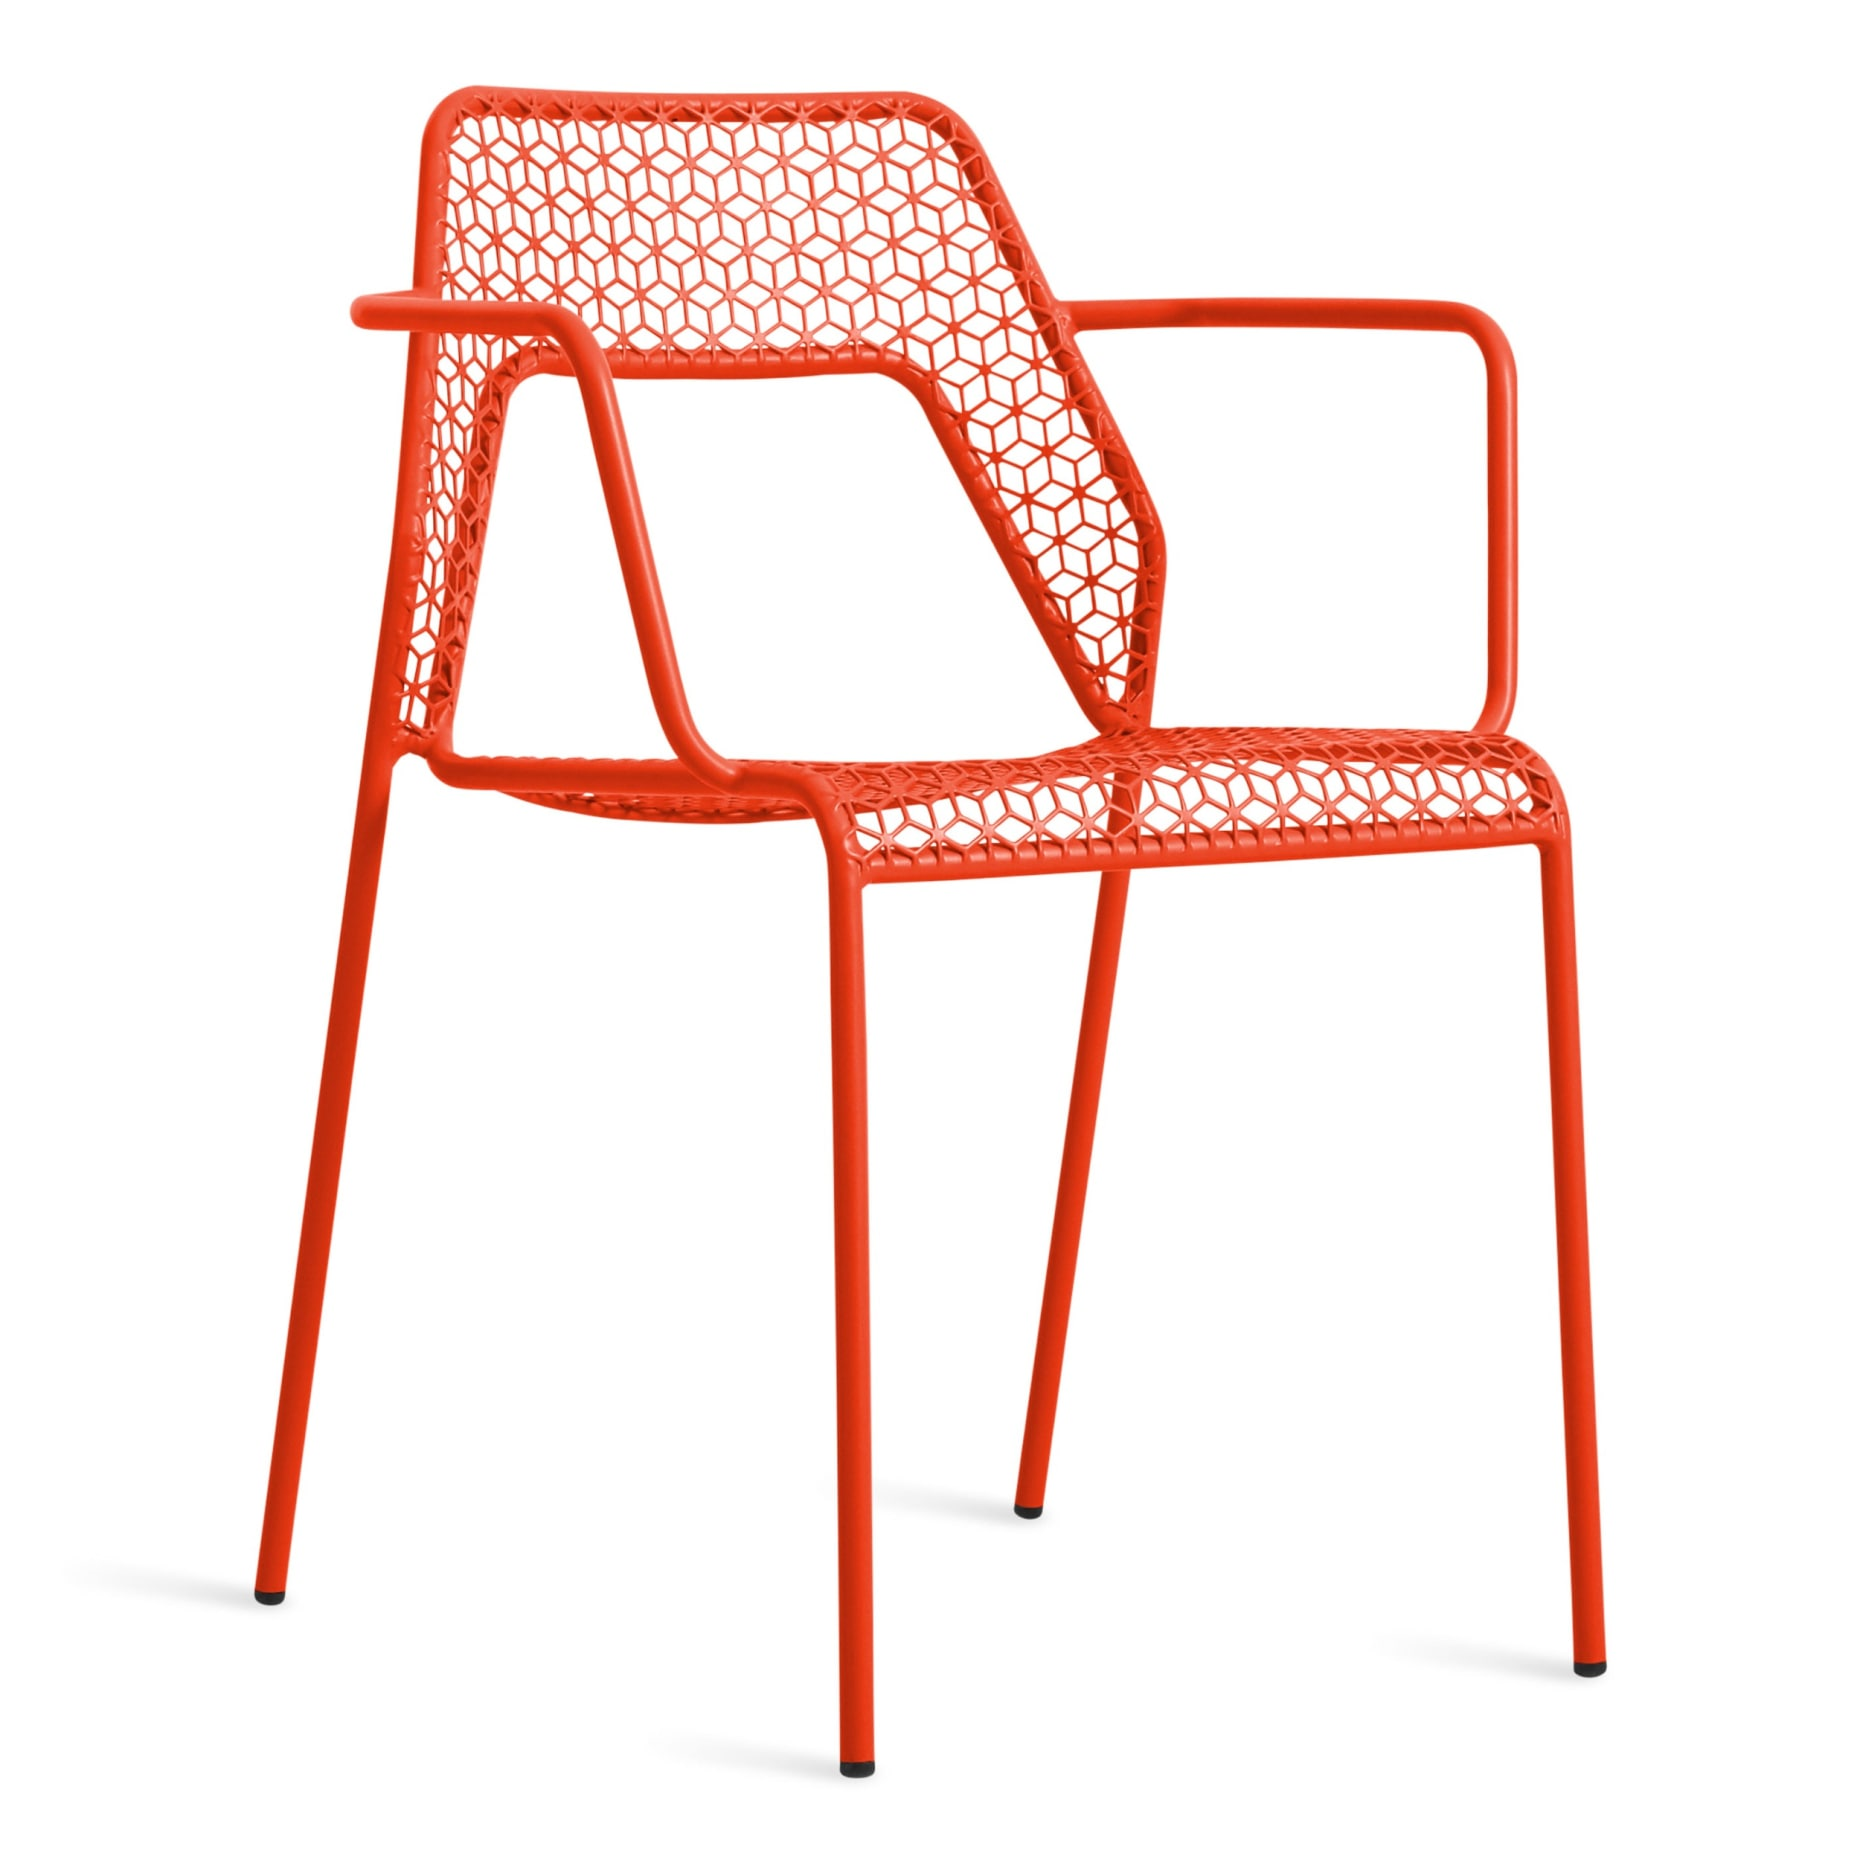 hm1_armchr_rd_34-hot-mesh-armchair-red